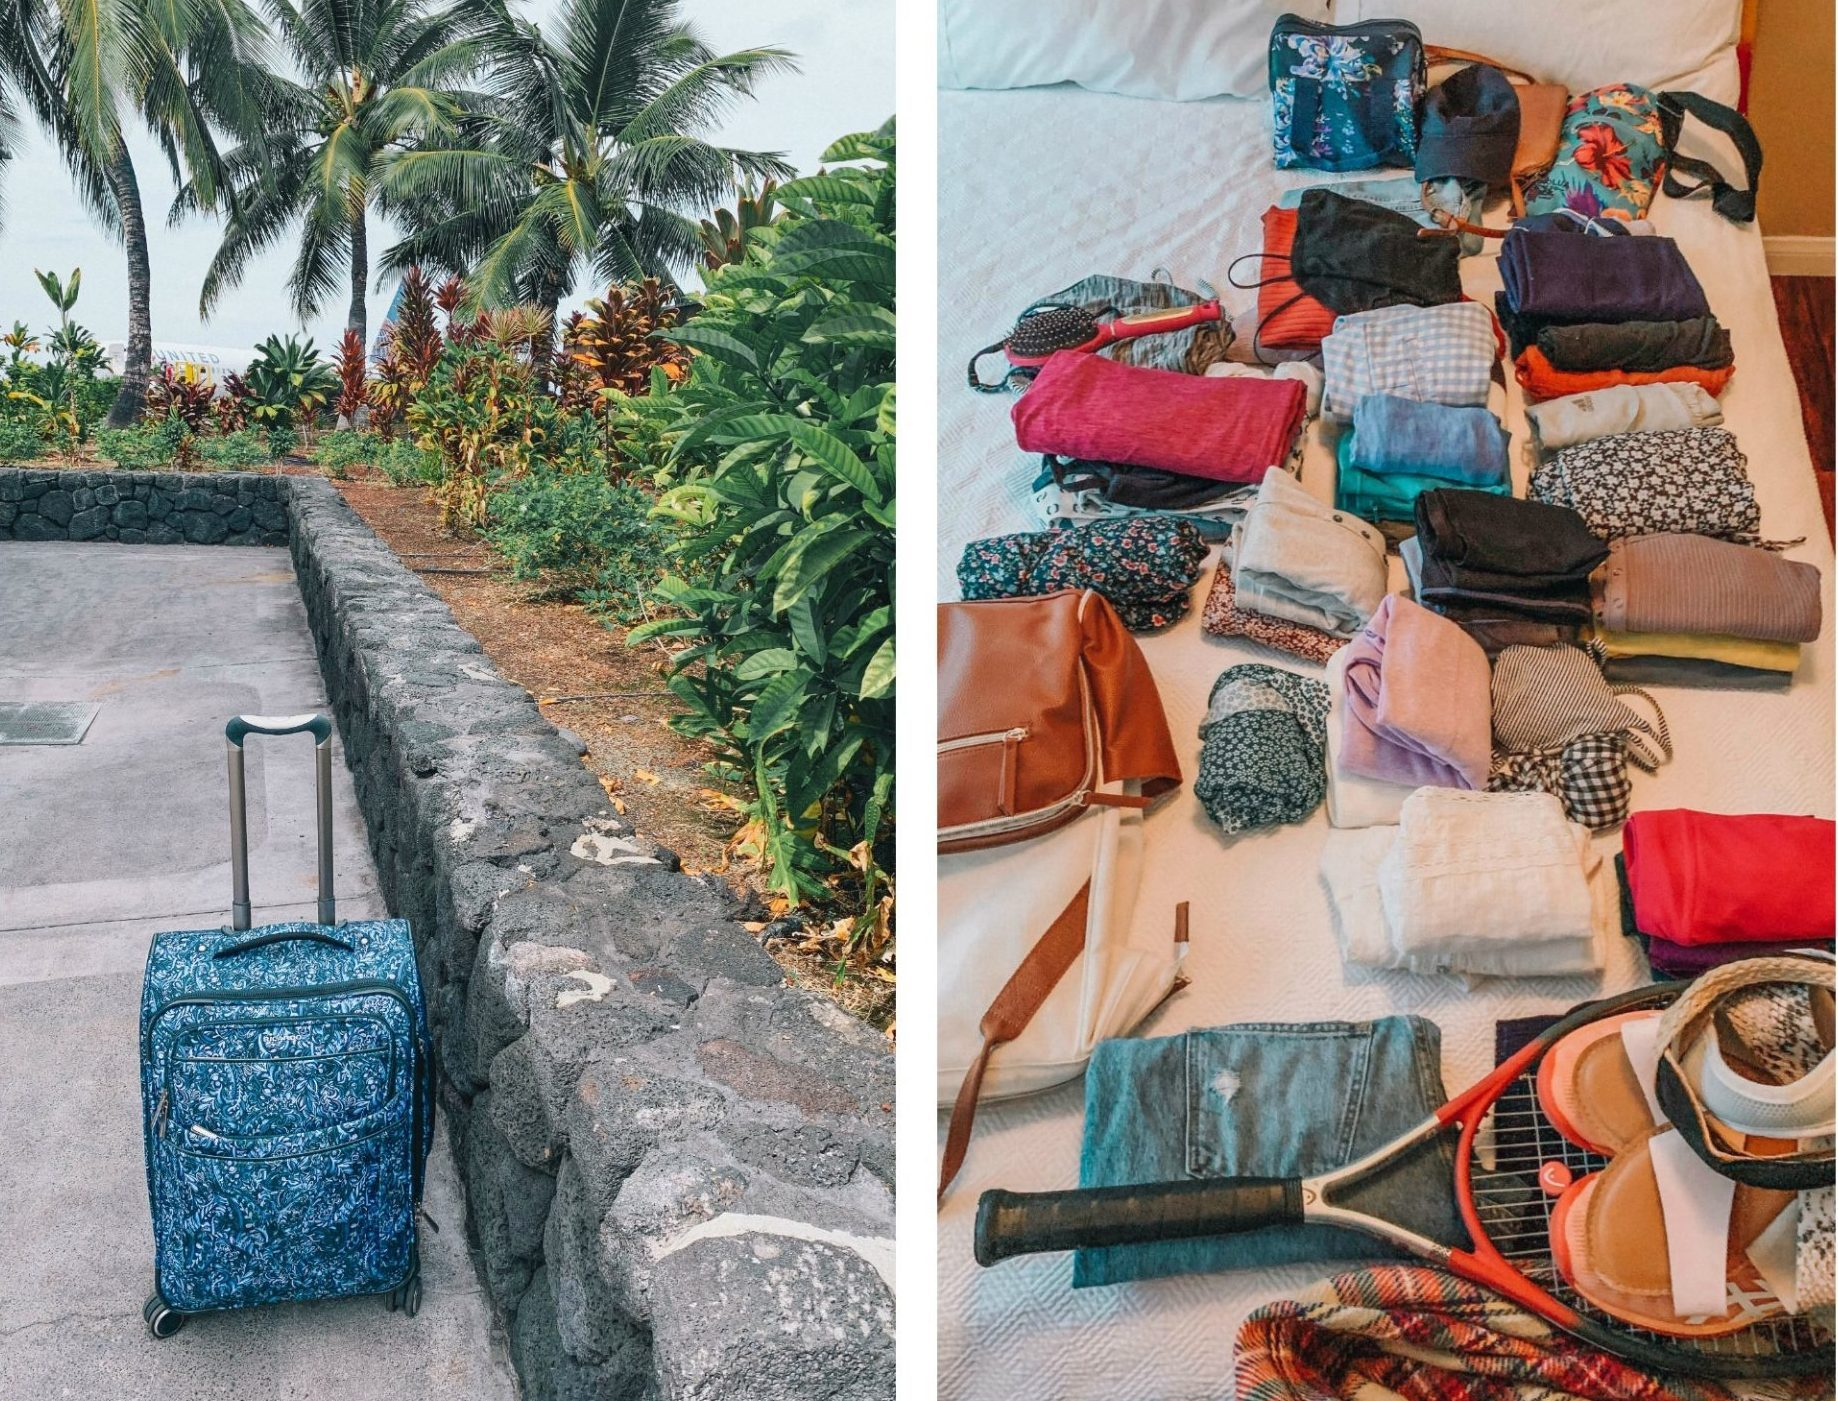 traveling to hawaii, packing, home